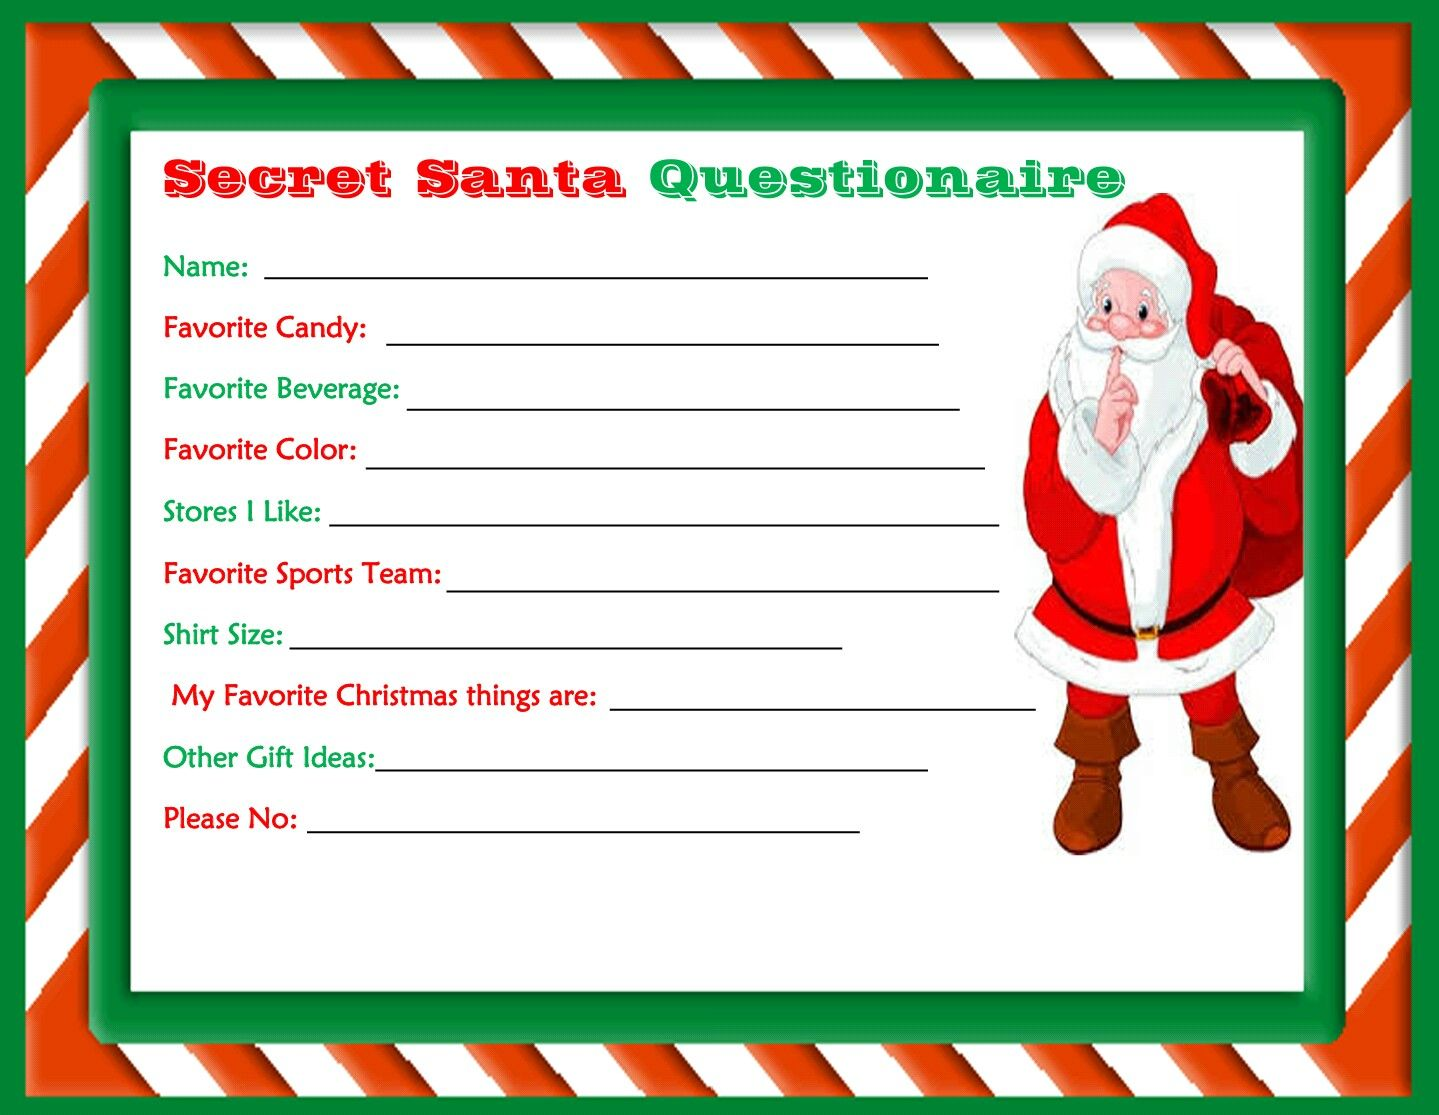 graphic regarding Free Printable Secret Santa Form named Mystery Santa Drawing Slips Absolutely free down load least difficult Magic formula Santa